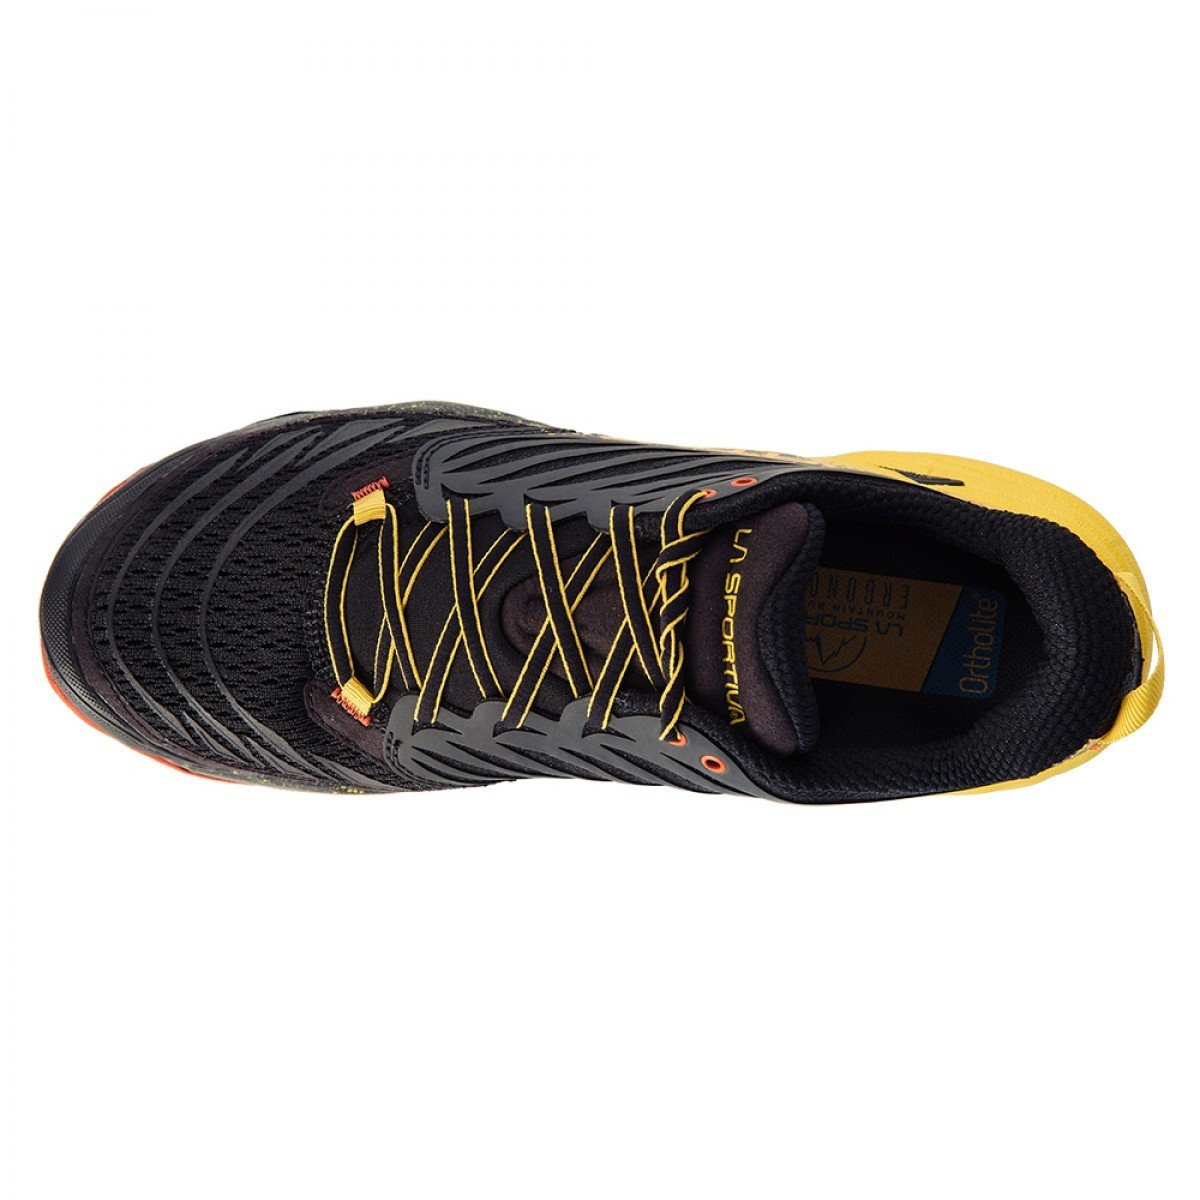 La Sportiva Akasha running shoe, view from above